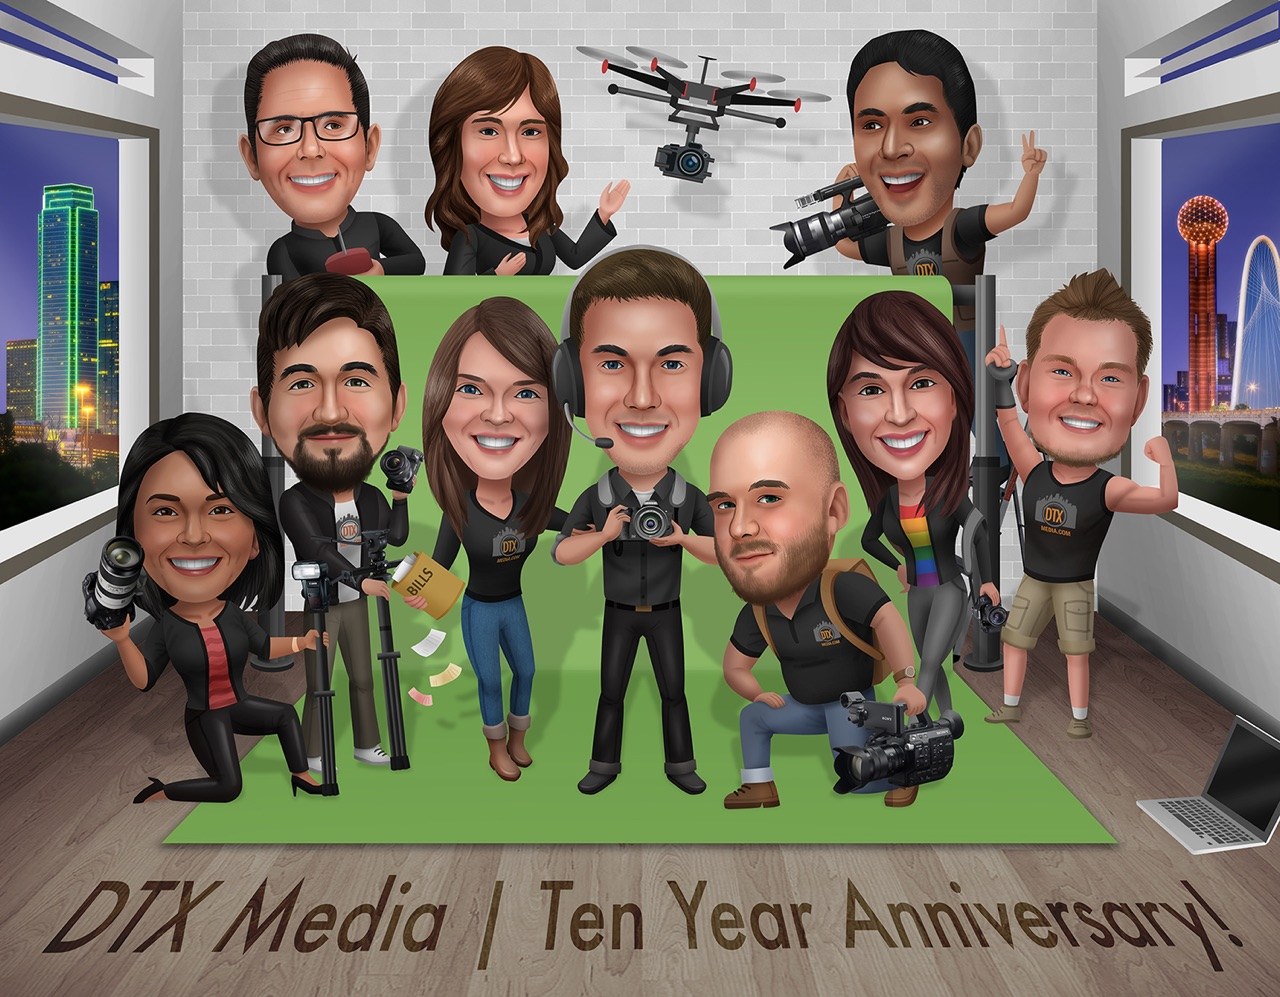 An animated/ cartoon picture of group of Dallas photographers and videographers for the firm DTX Media, LLC